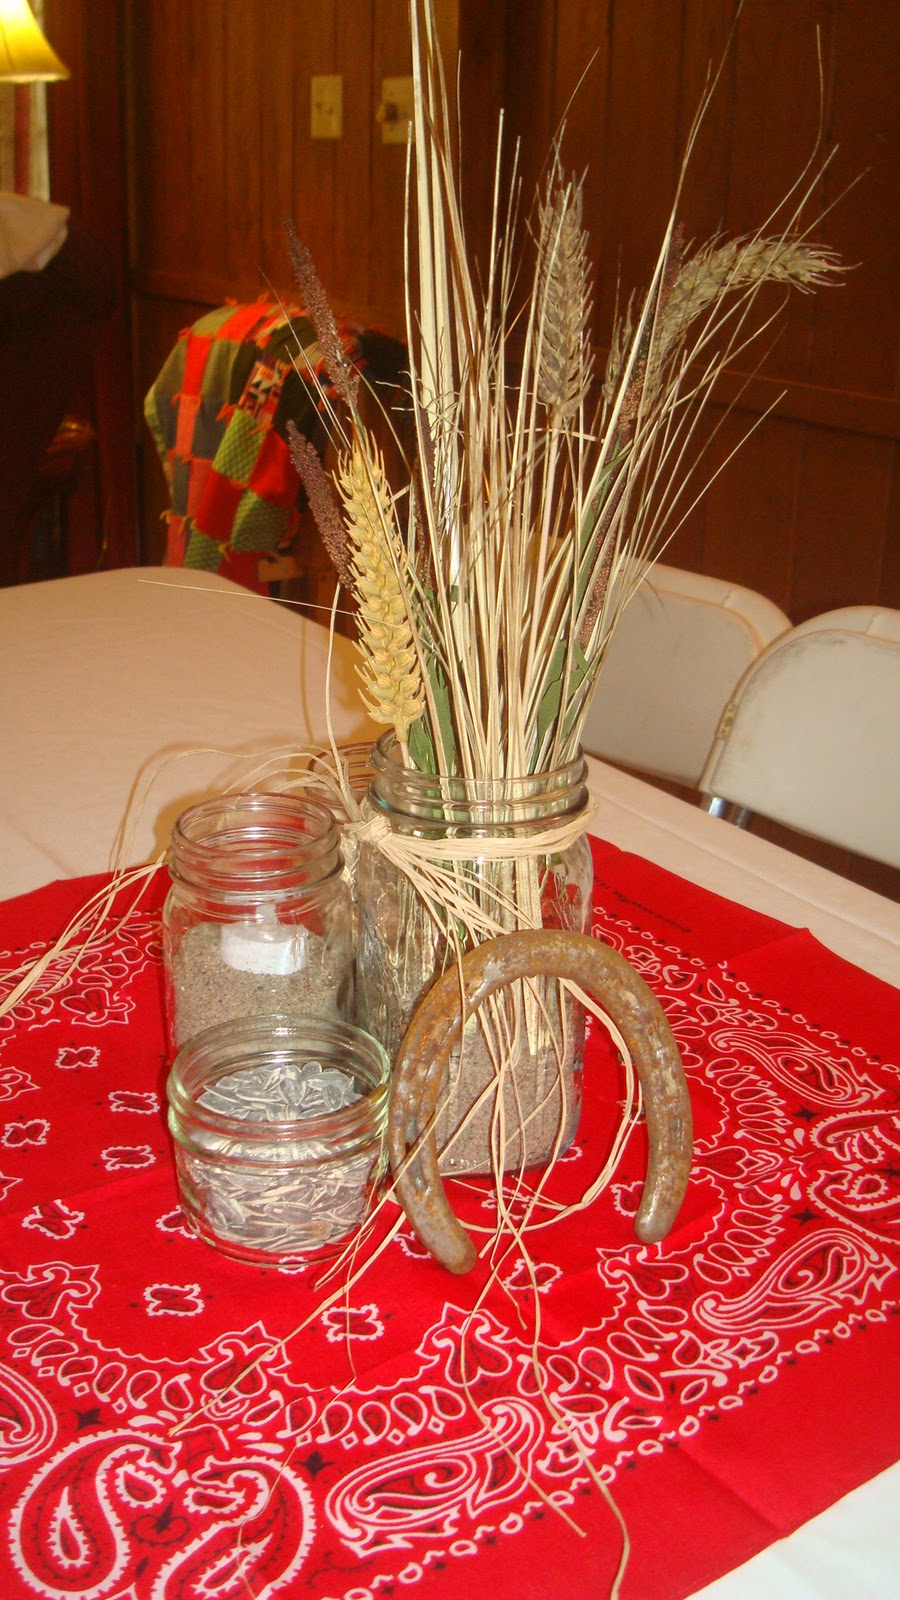 5 Centerpieces to Decorate Your Party